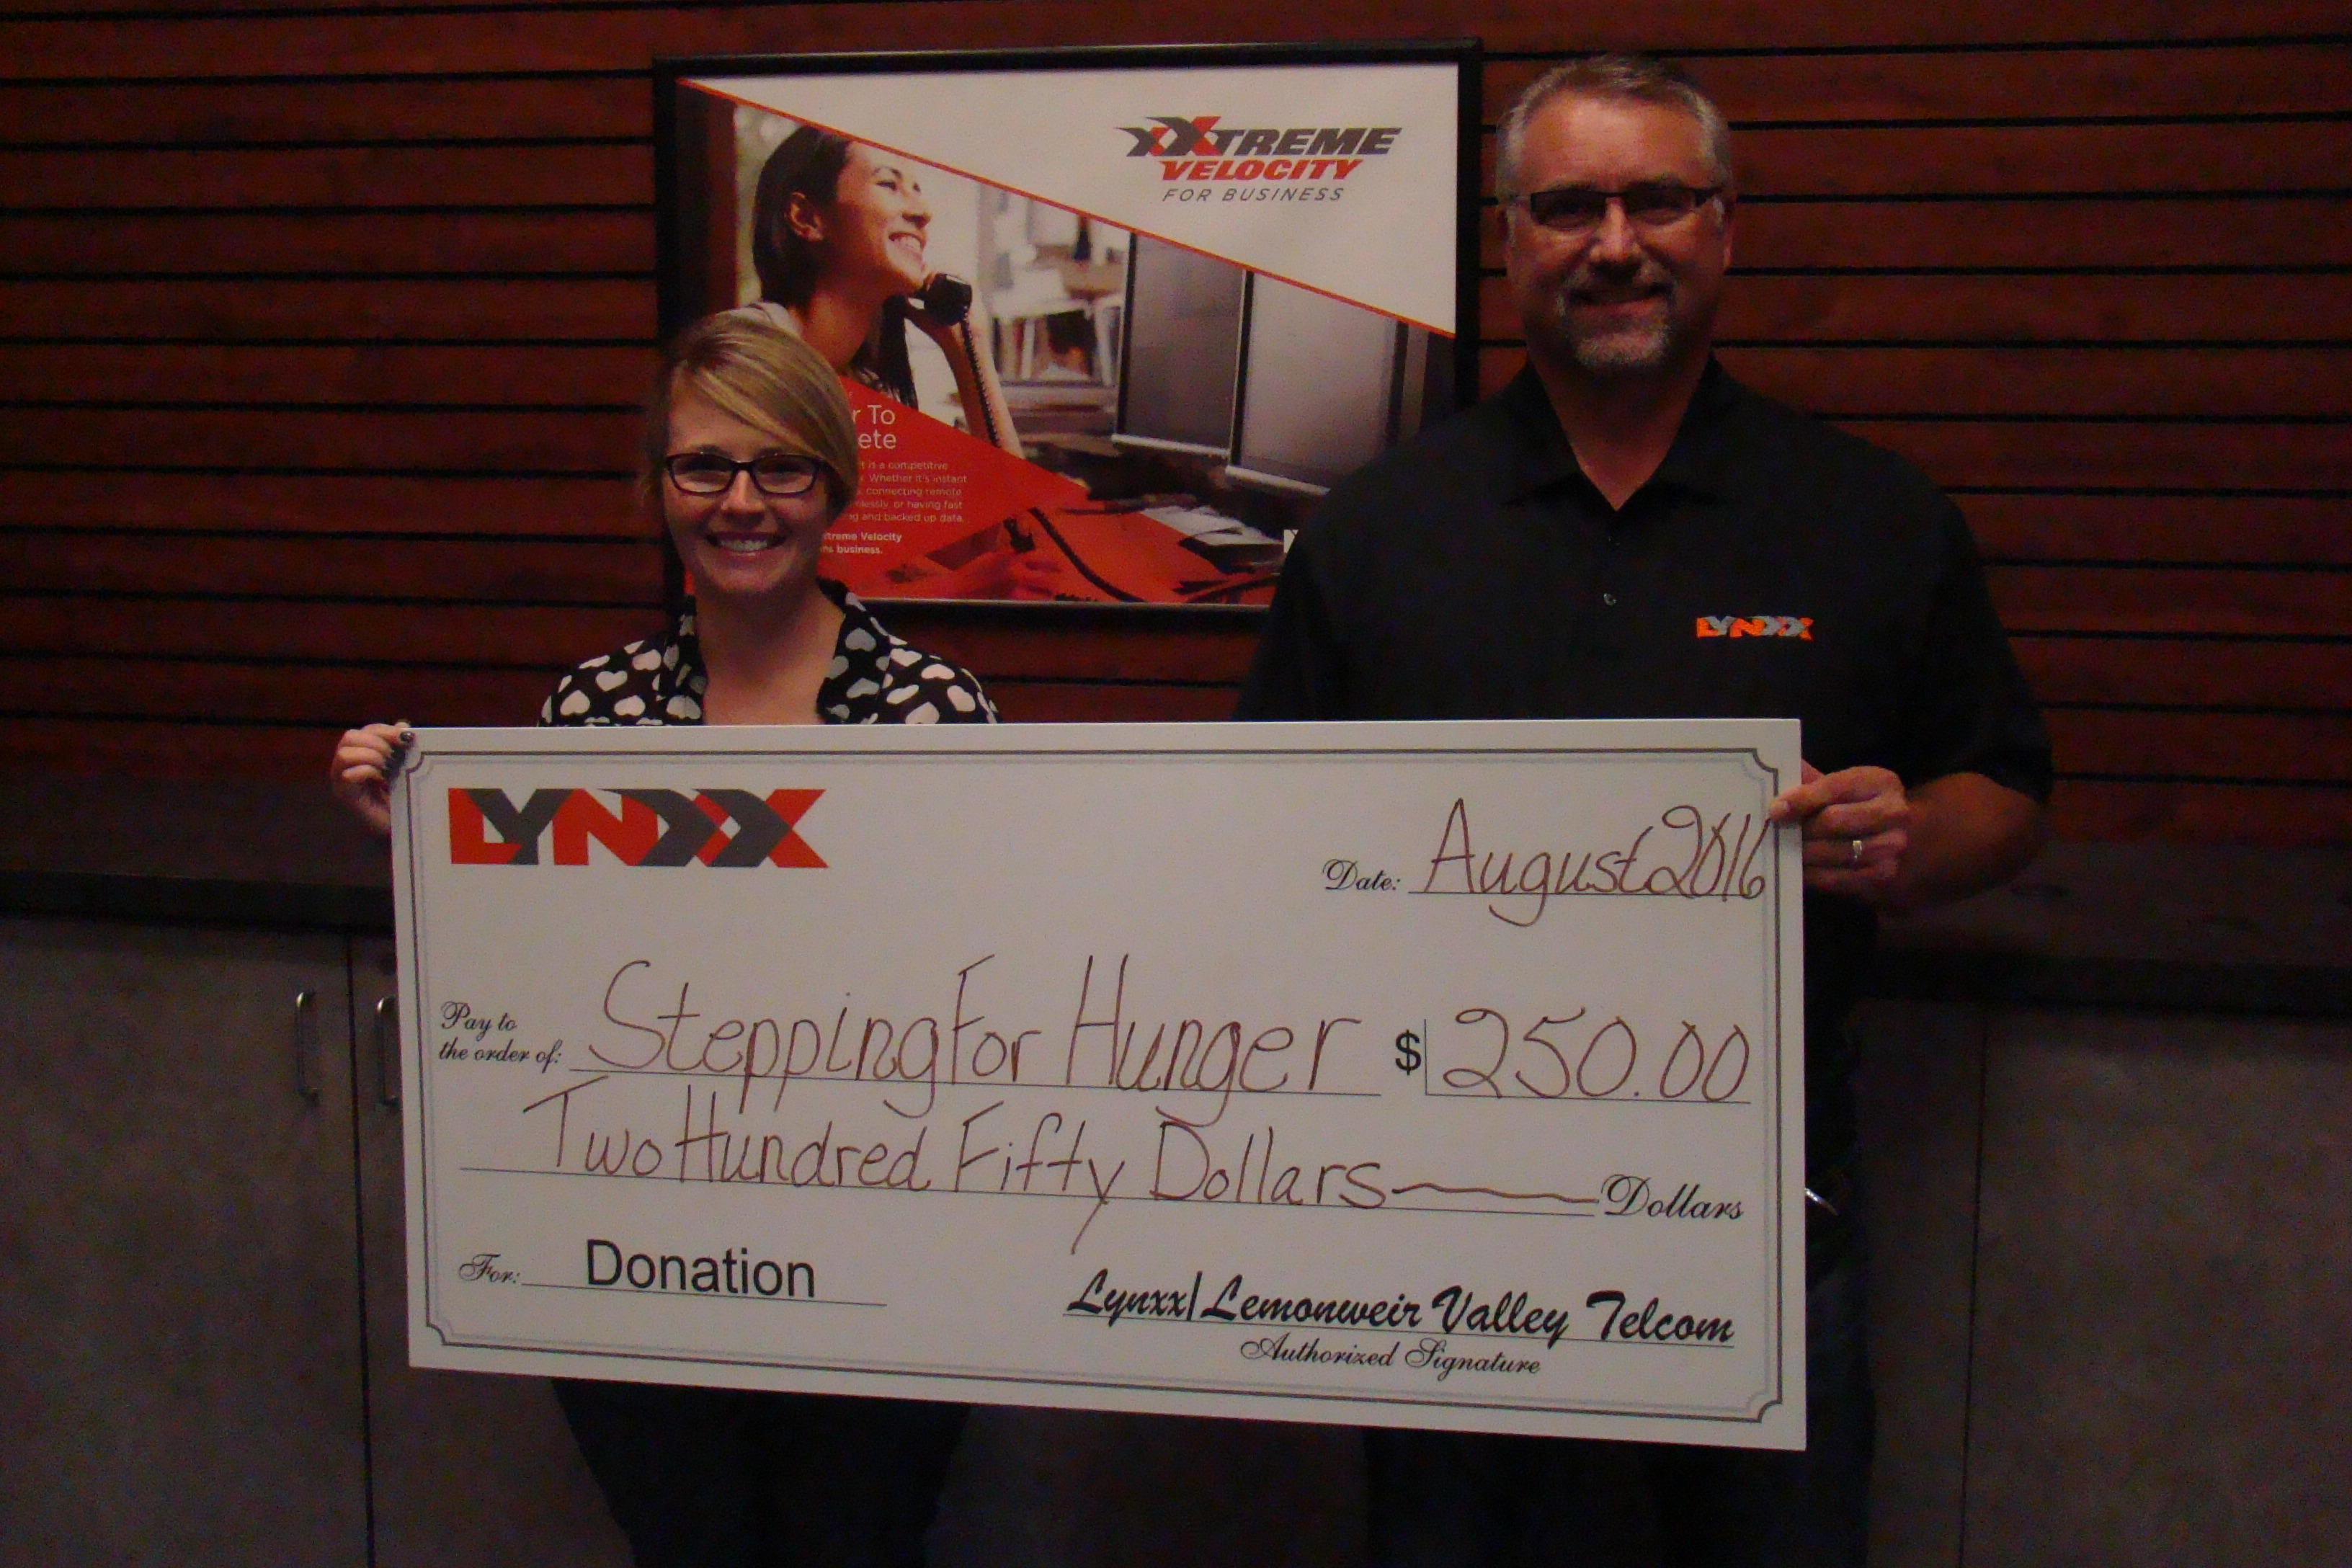 LYNXX Donates to 2016 Stepping For Hunger 5K RunWalk and 10K